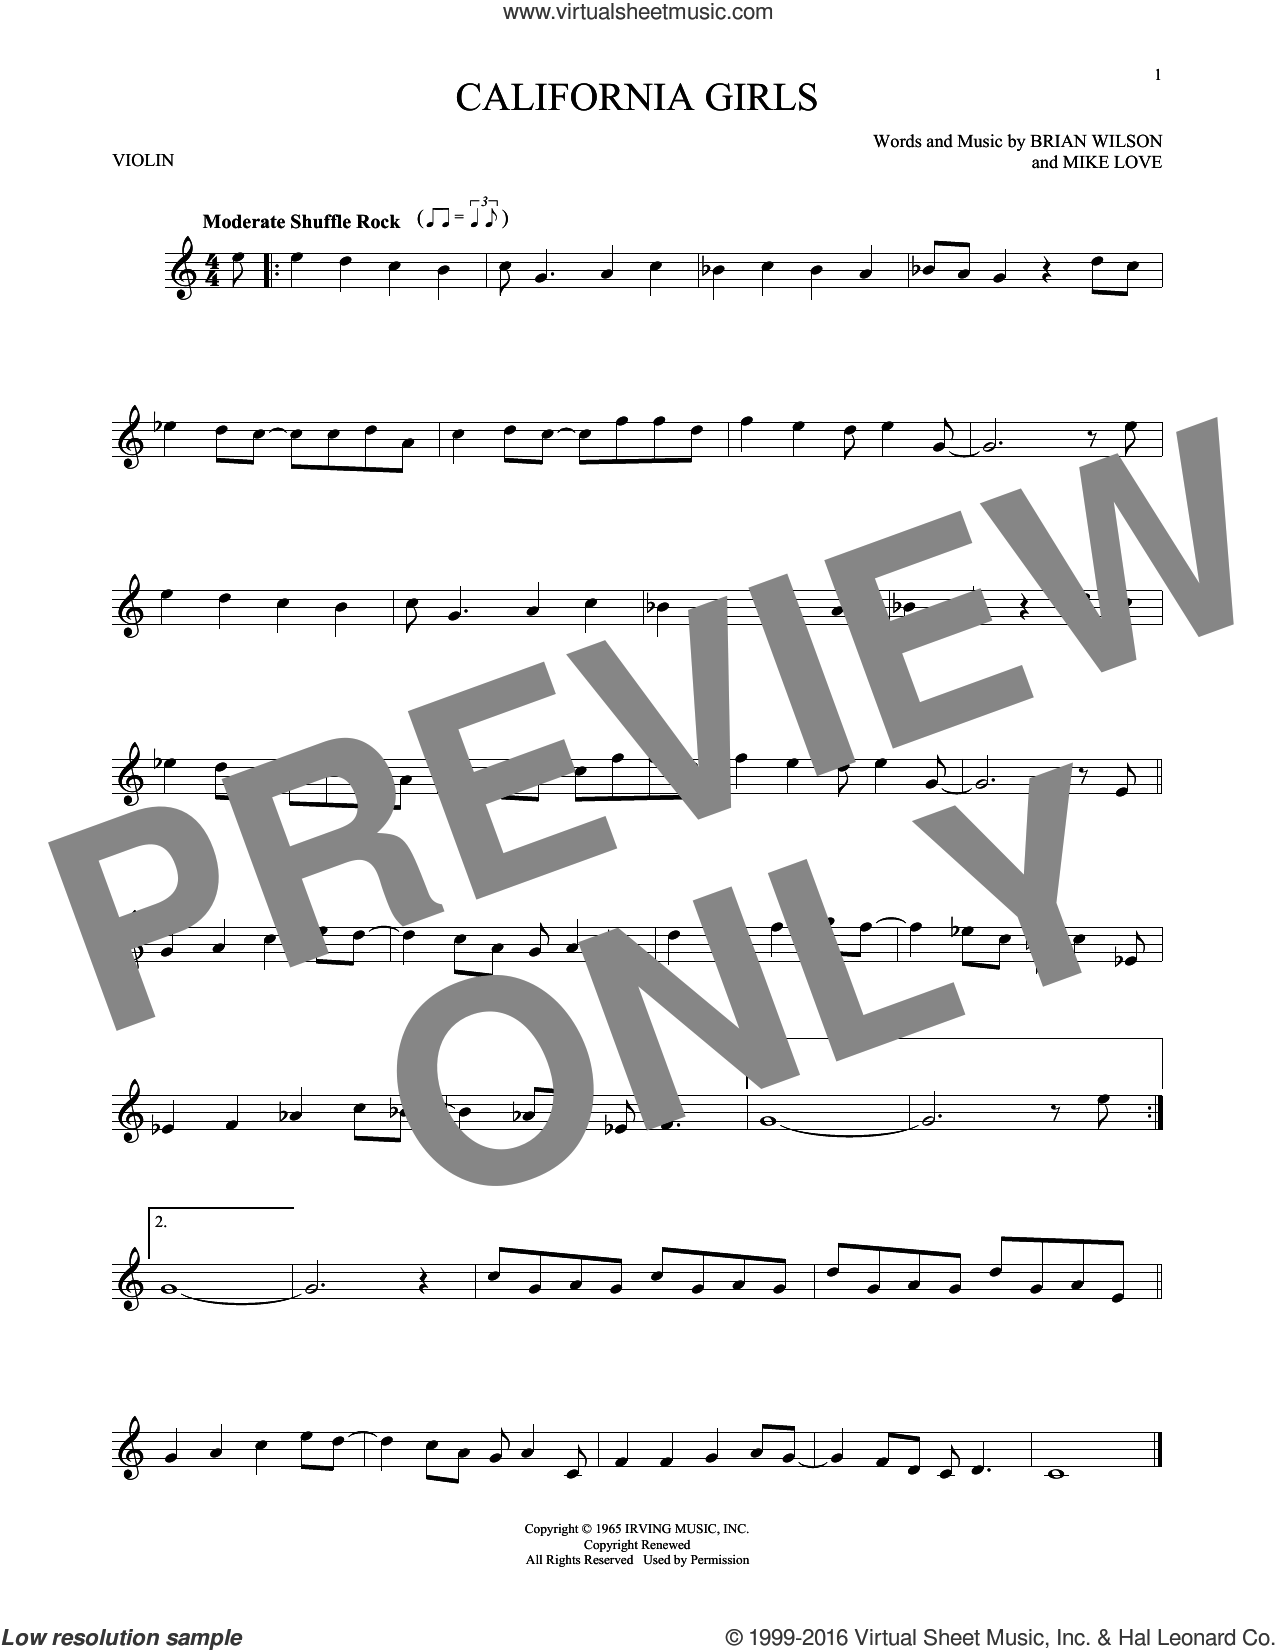 California Girls sheet music for violin solo by Mike Love